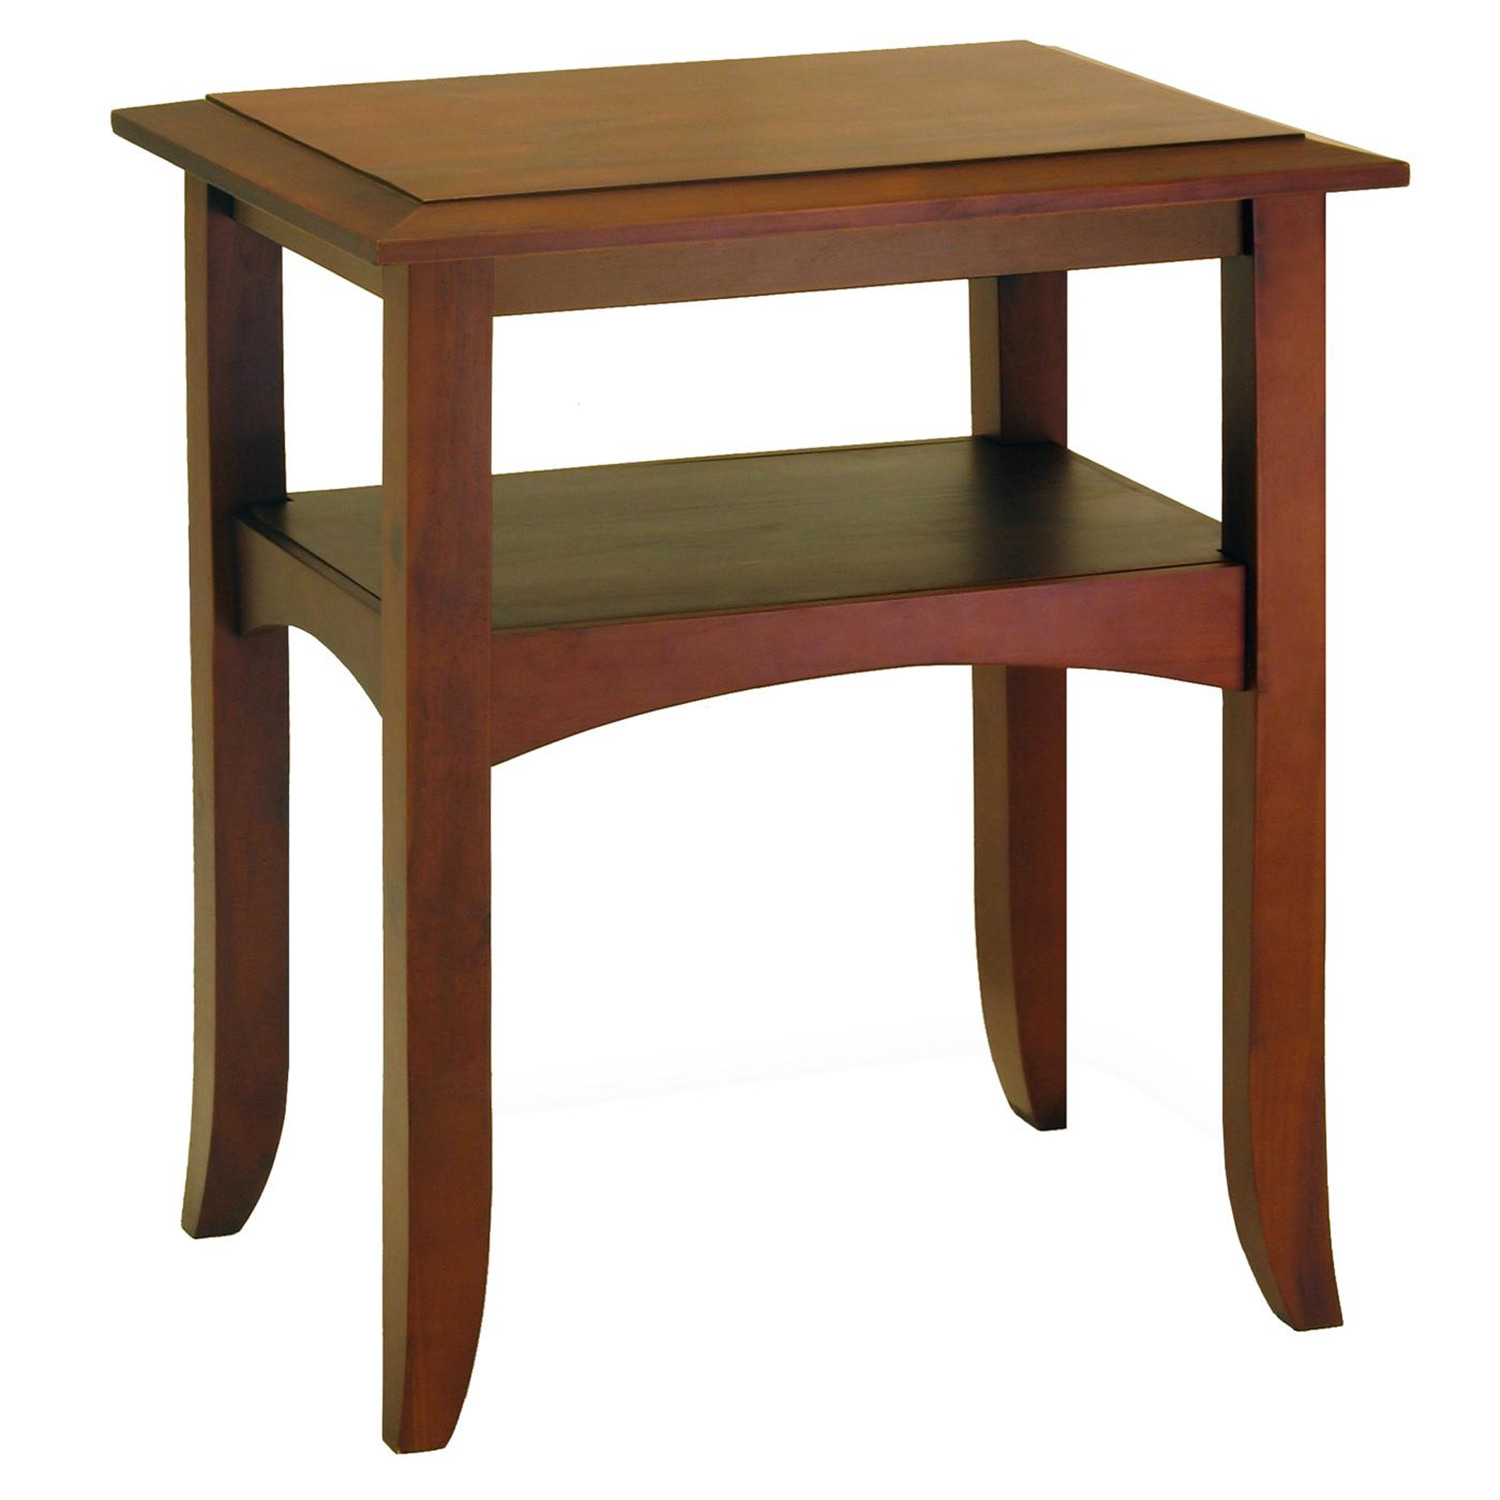 Craftsman End Table With Shelf   [94723]